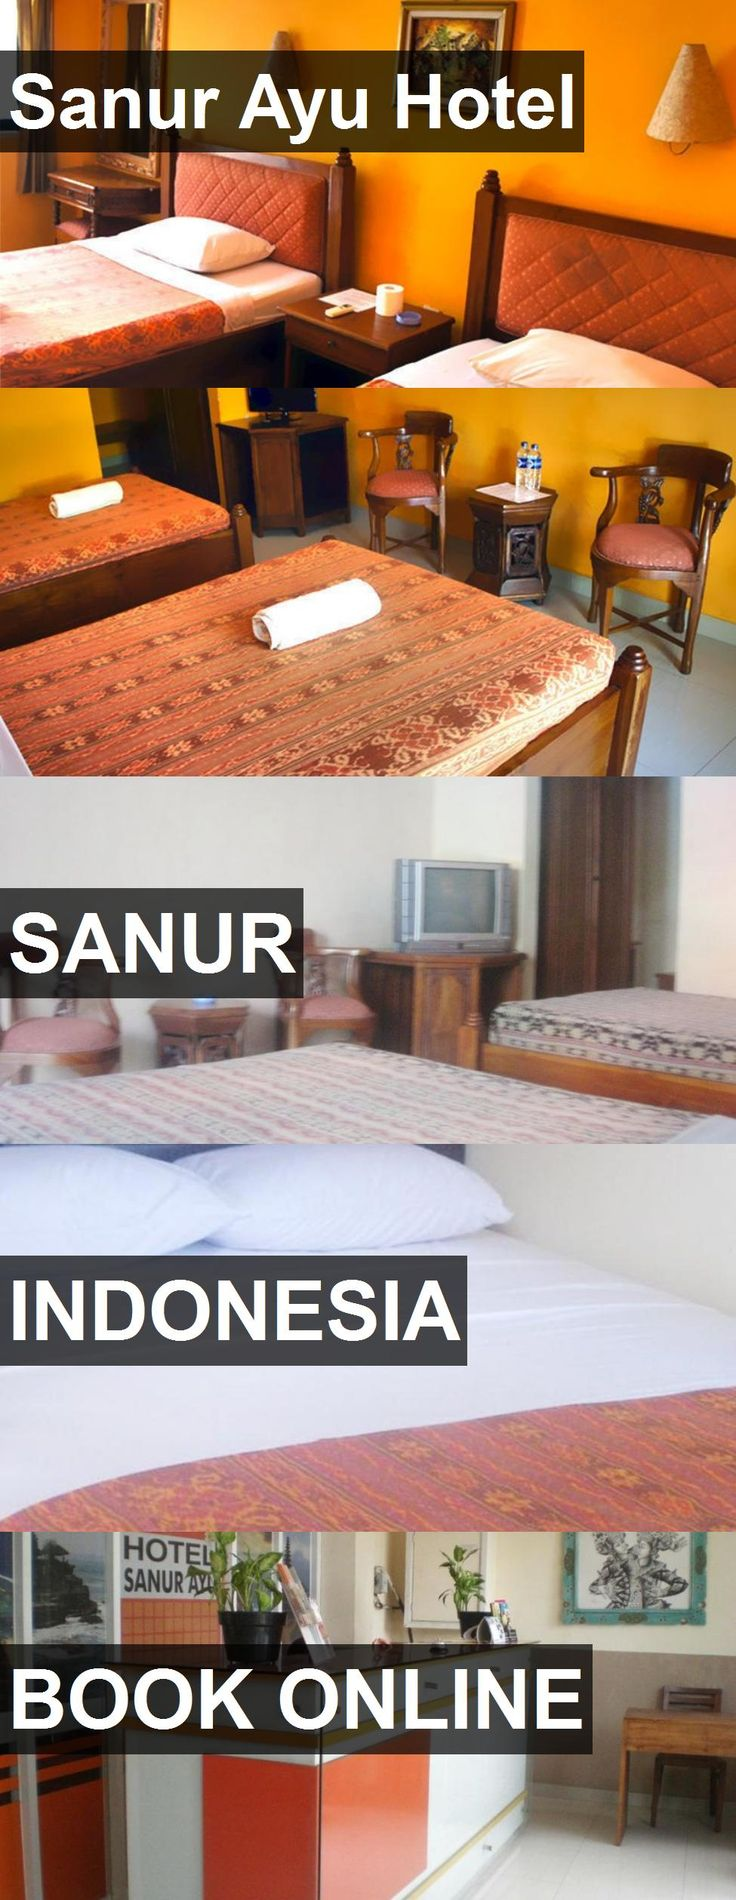 Hotel Sanur Ayu Hotel in Sanur, Indonesia. For more information, photos, reviews and best prices please follow the link. #Indonesia #Sanur #SanurAyuHotel #hotel #travel #vacation